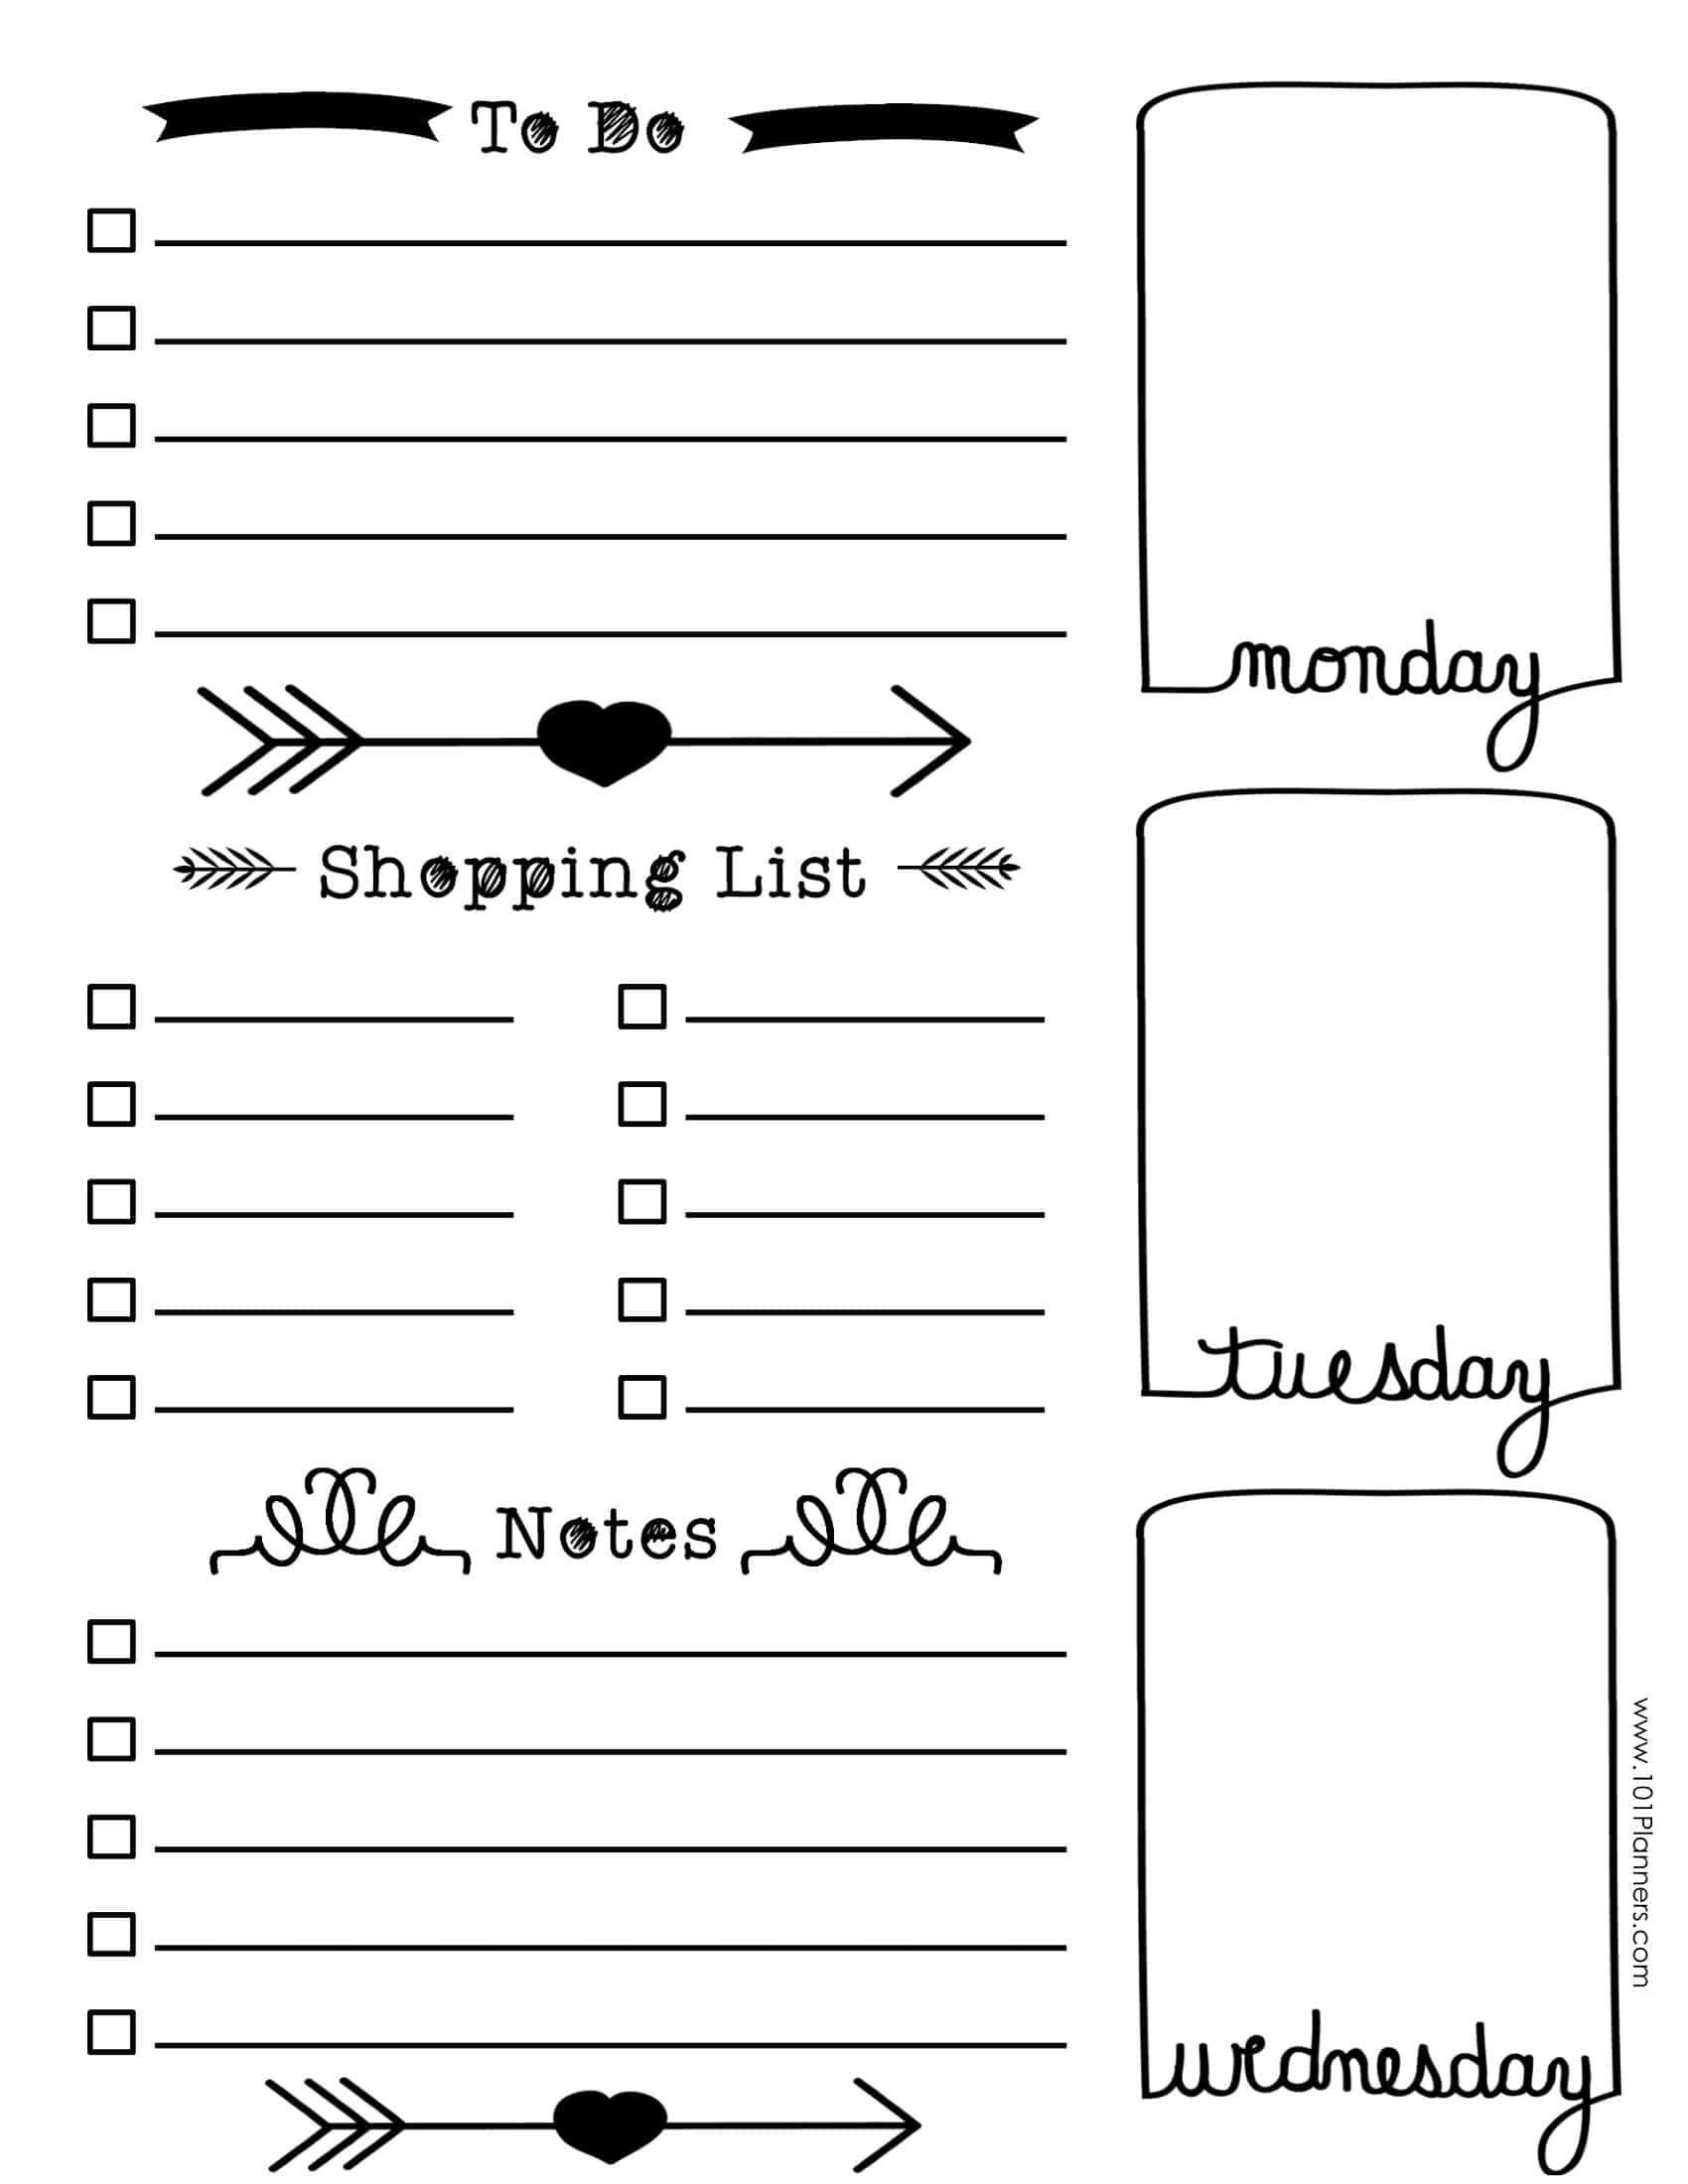 Free Bullet Journal Printables | Customize Online For Any Planner Size - Free Printable Bullet Journal Pages